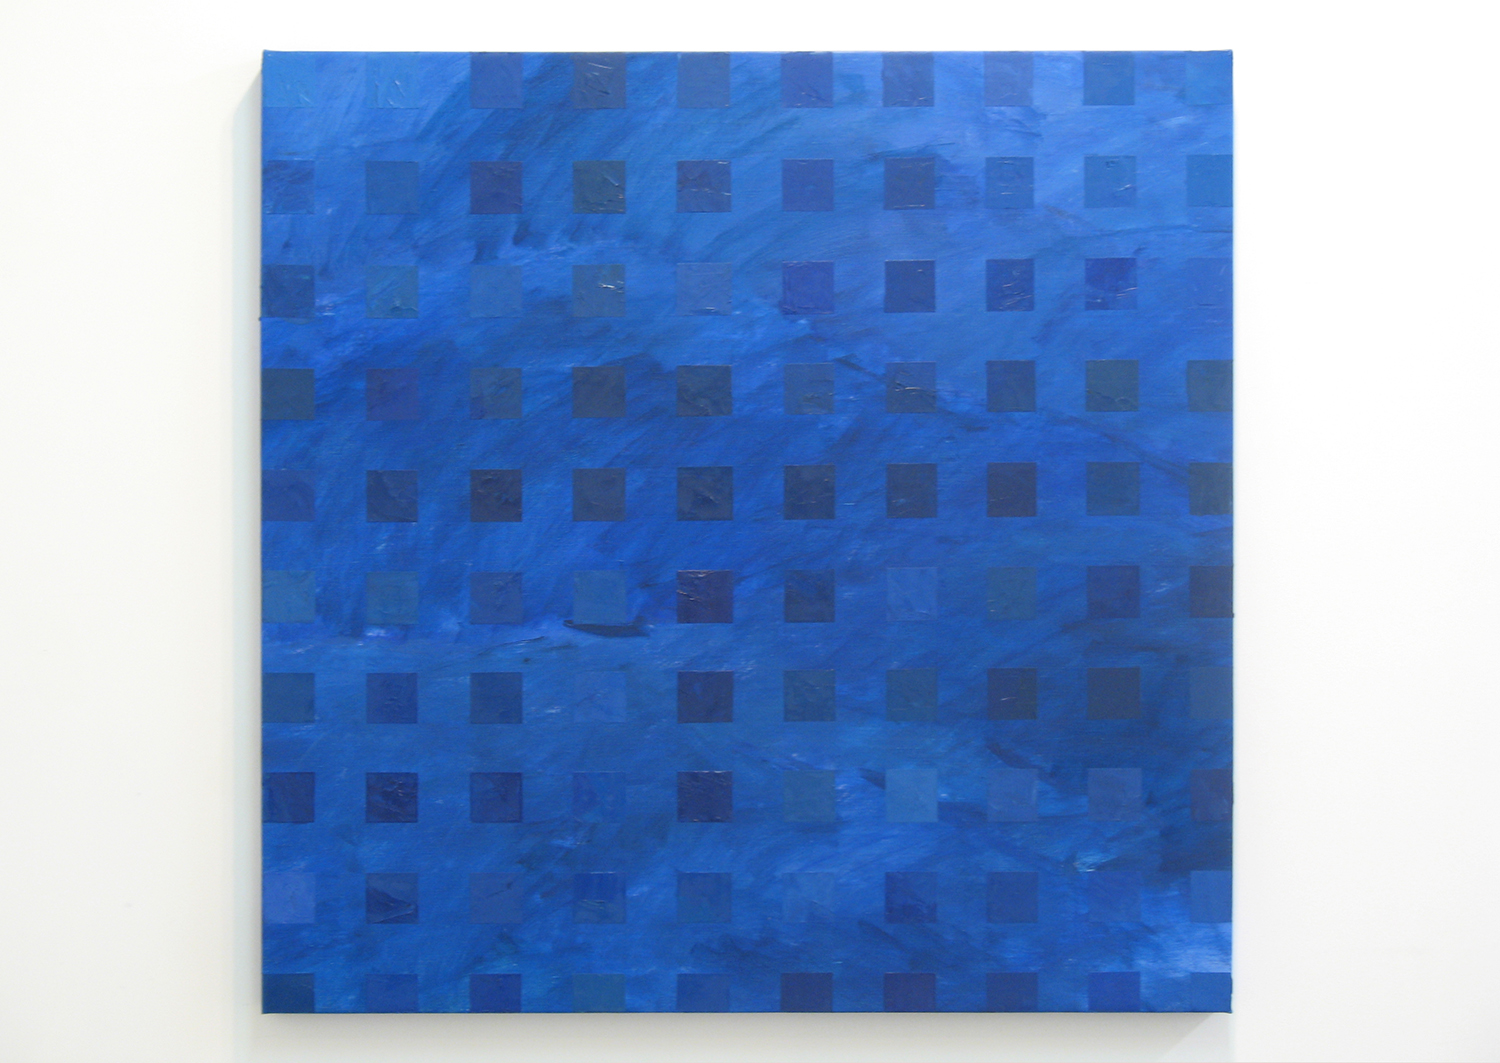 Color-Work '06-I|oil on canvas|90 x 90 cm|2006